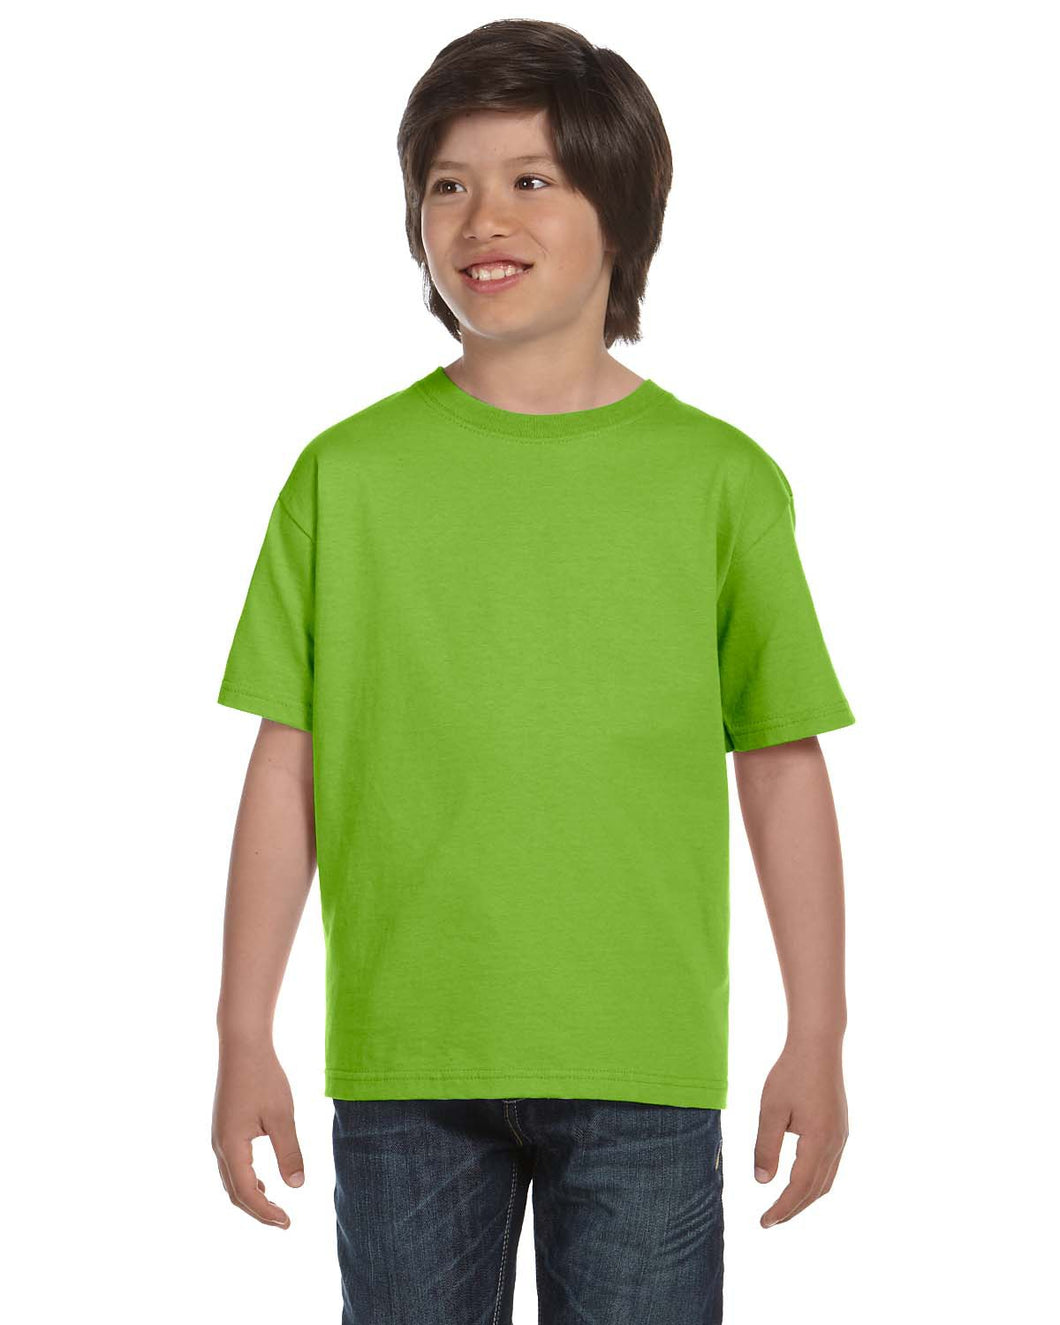 Hanes Beefy-T Youth T-Shirt